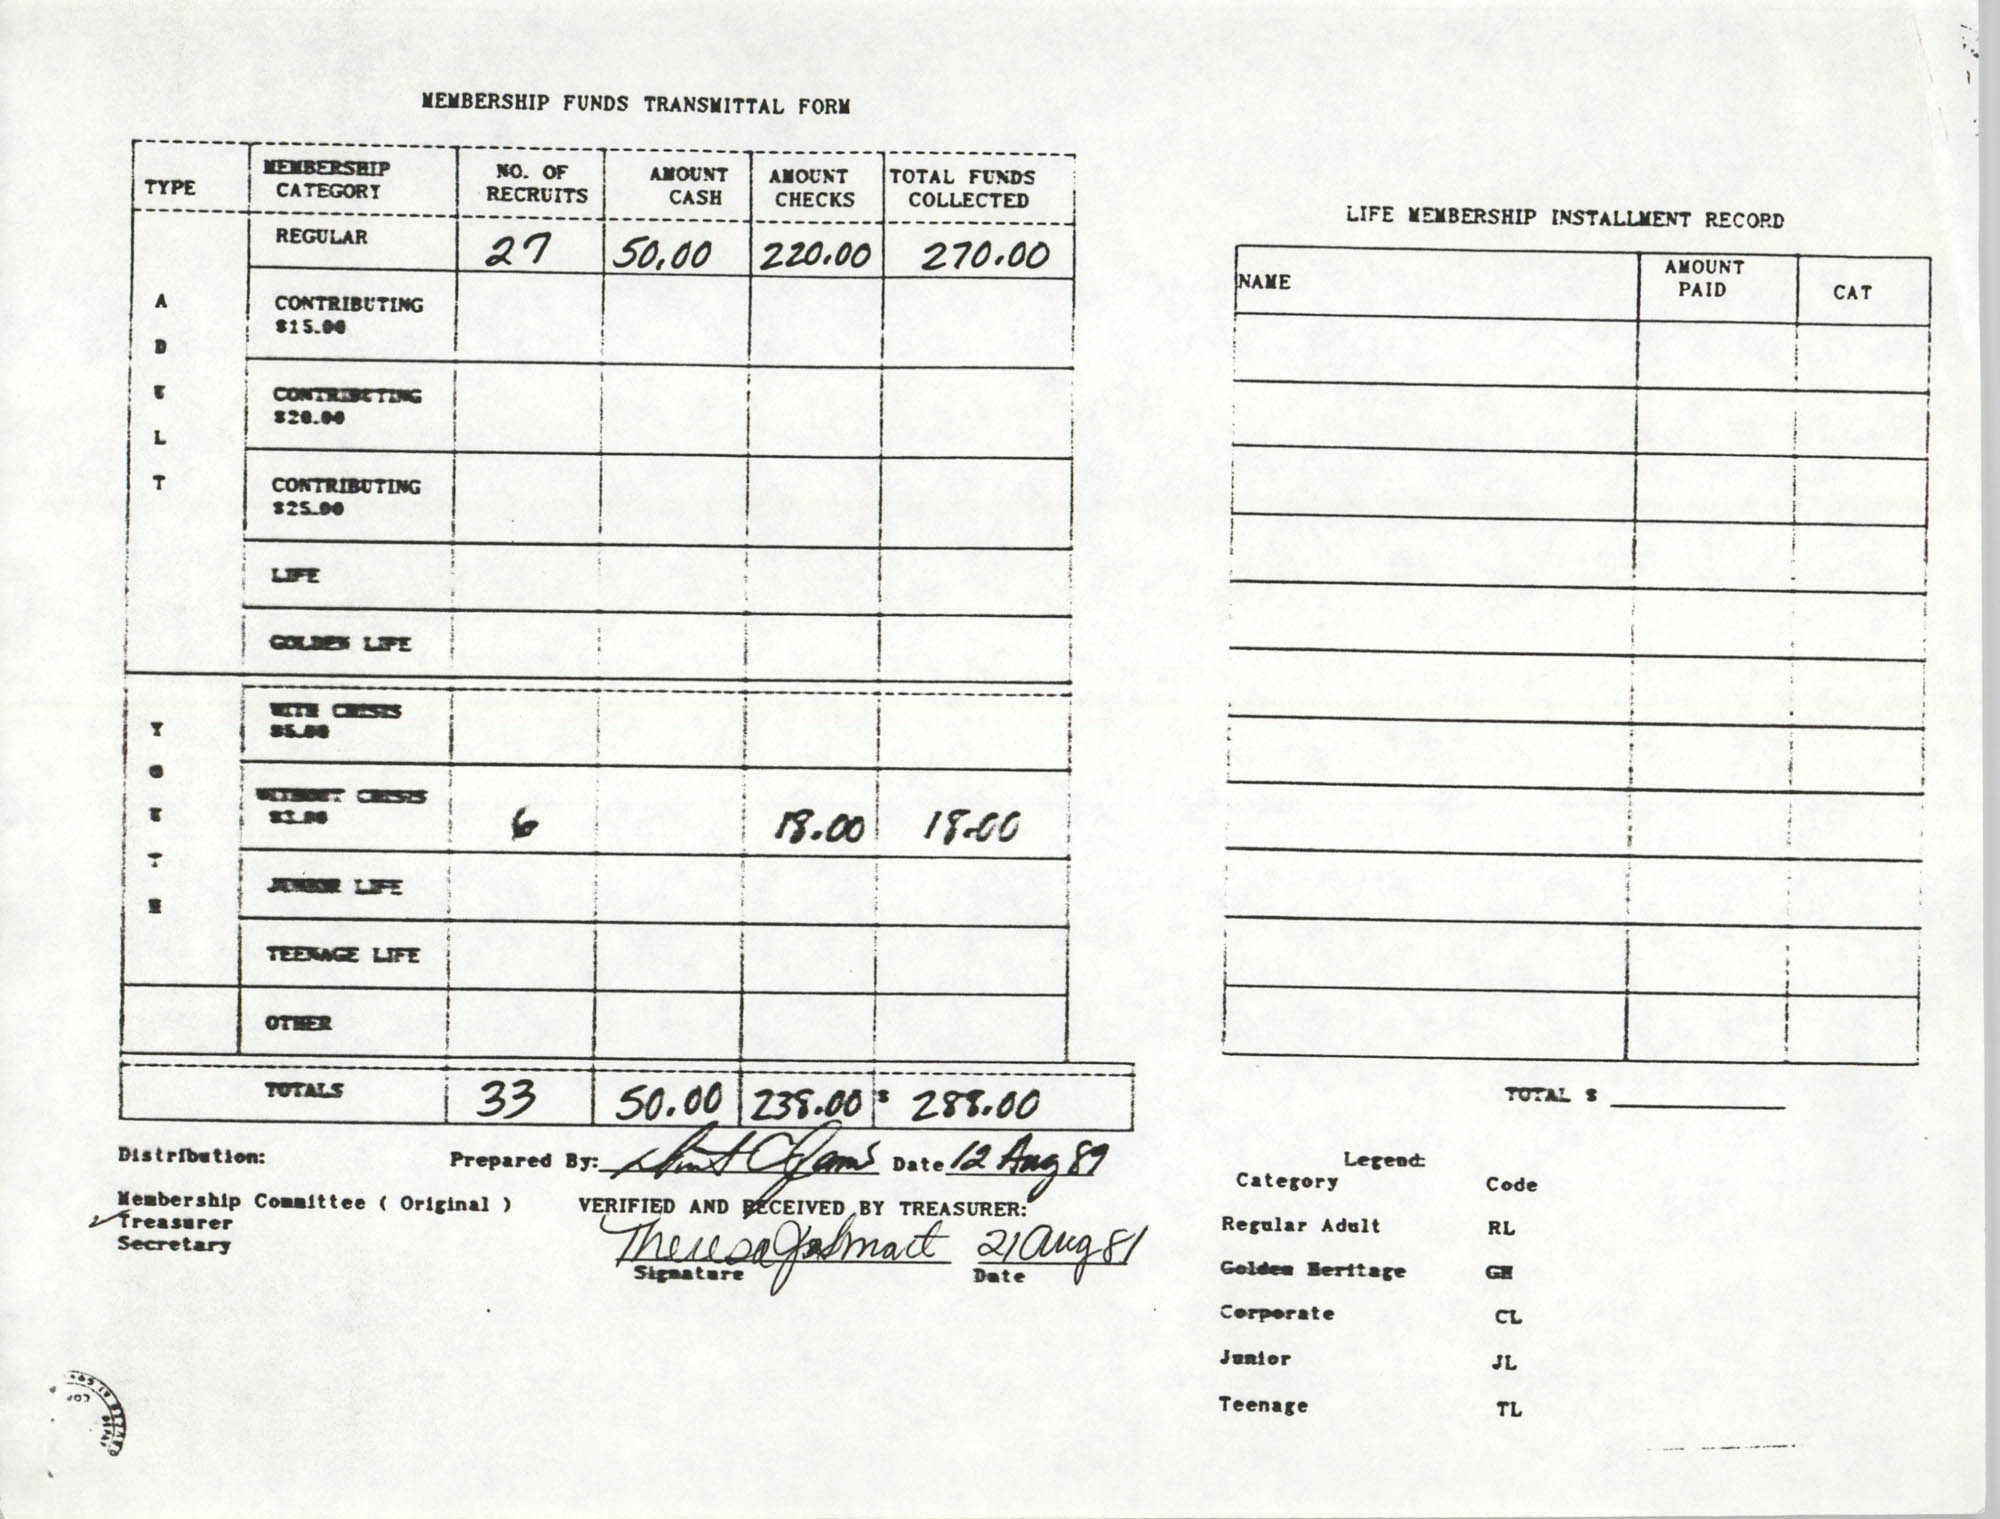 Charleston Branch of the NAACP Funds Transmittal Forms, August 1989, Page 1